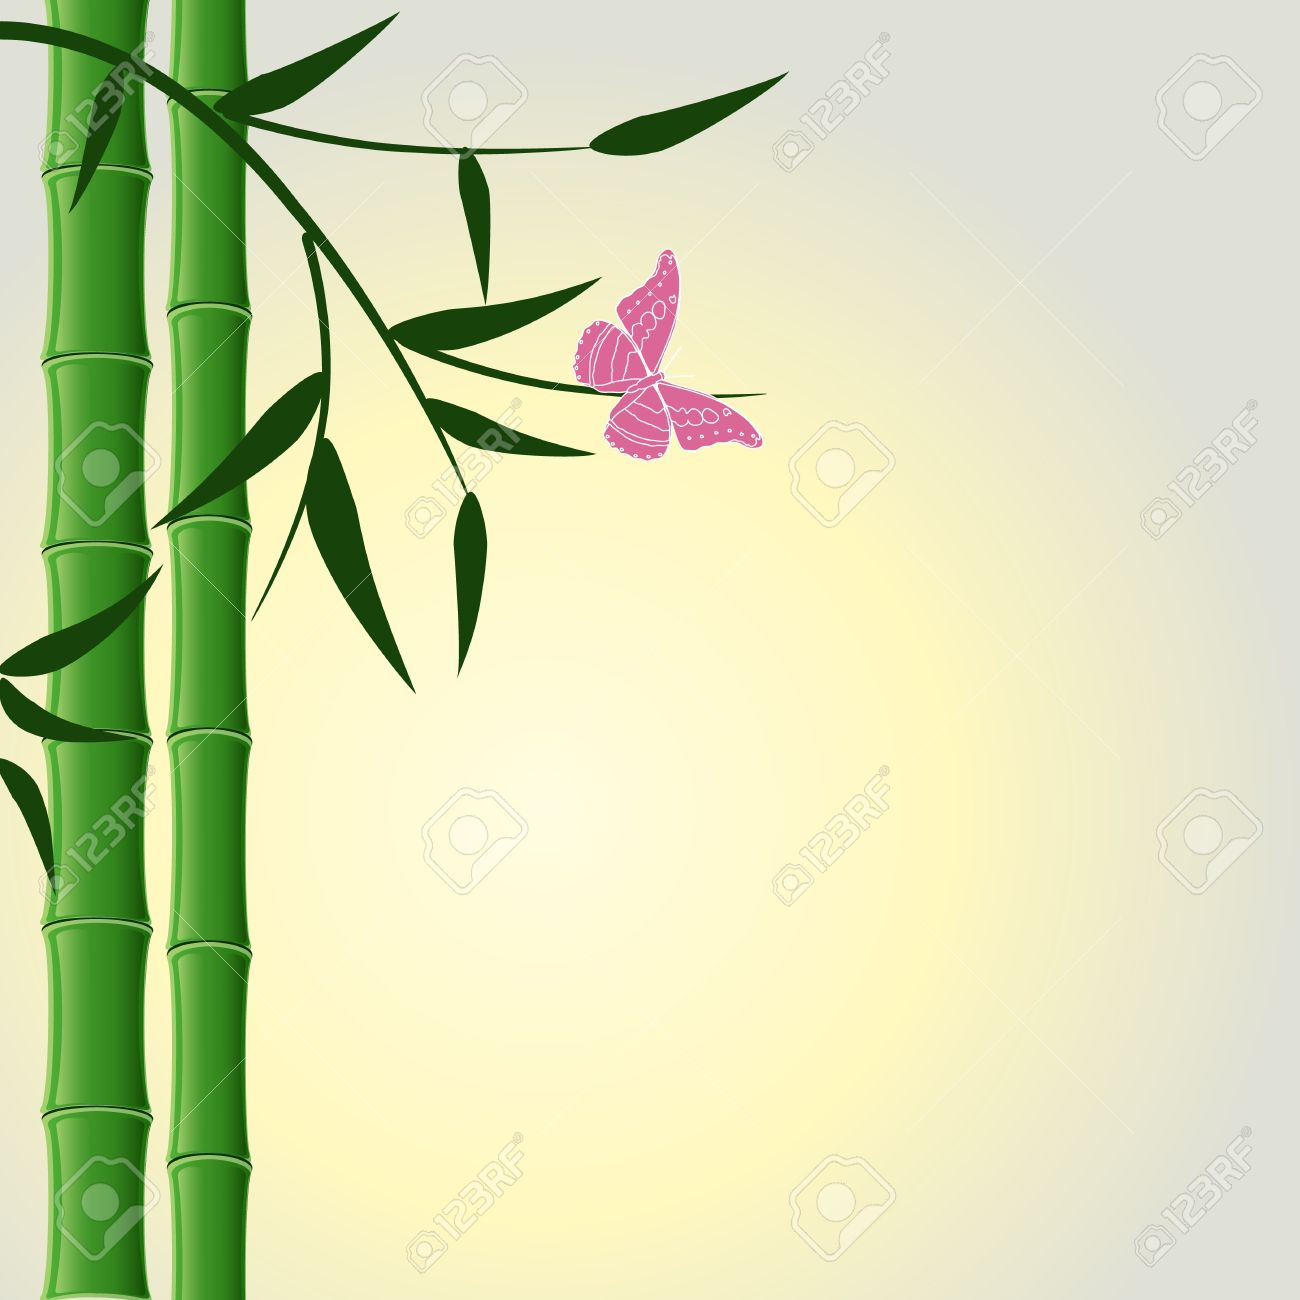 Bamboo Design Background With Butterfly